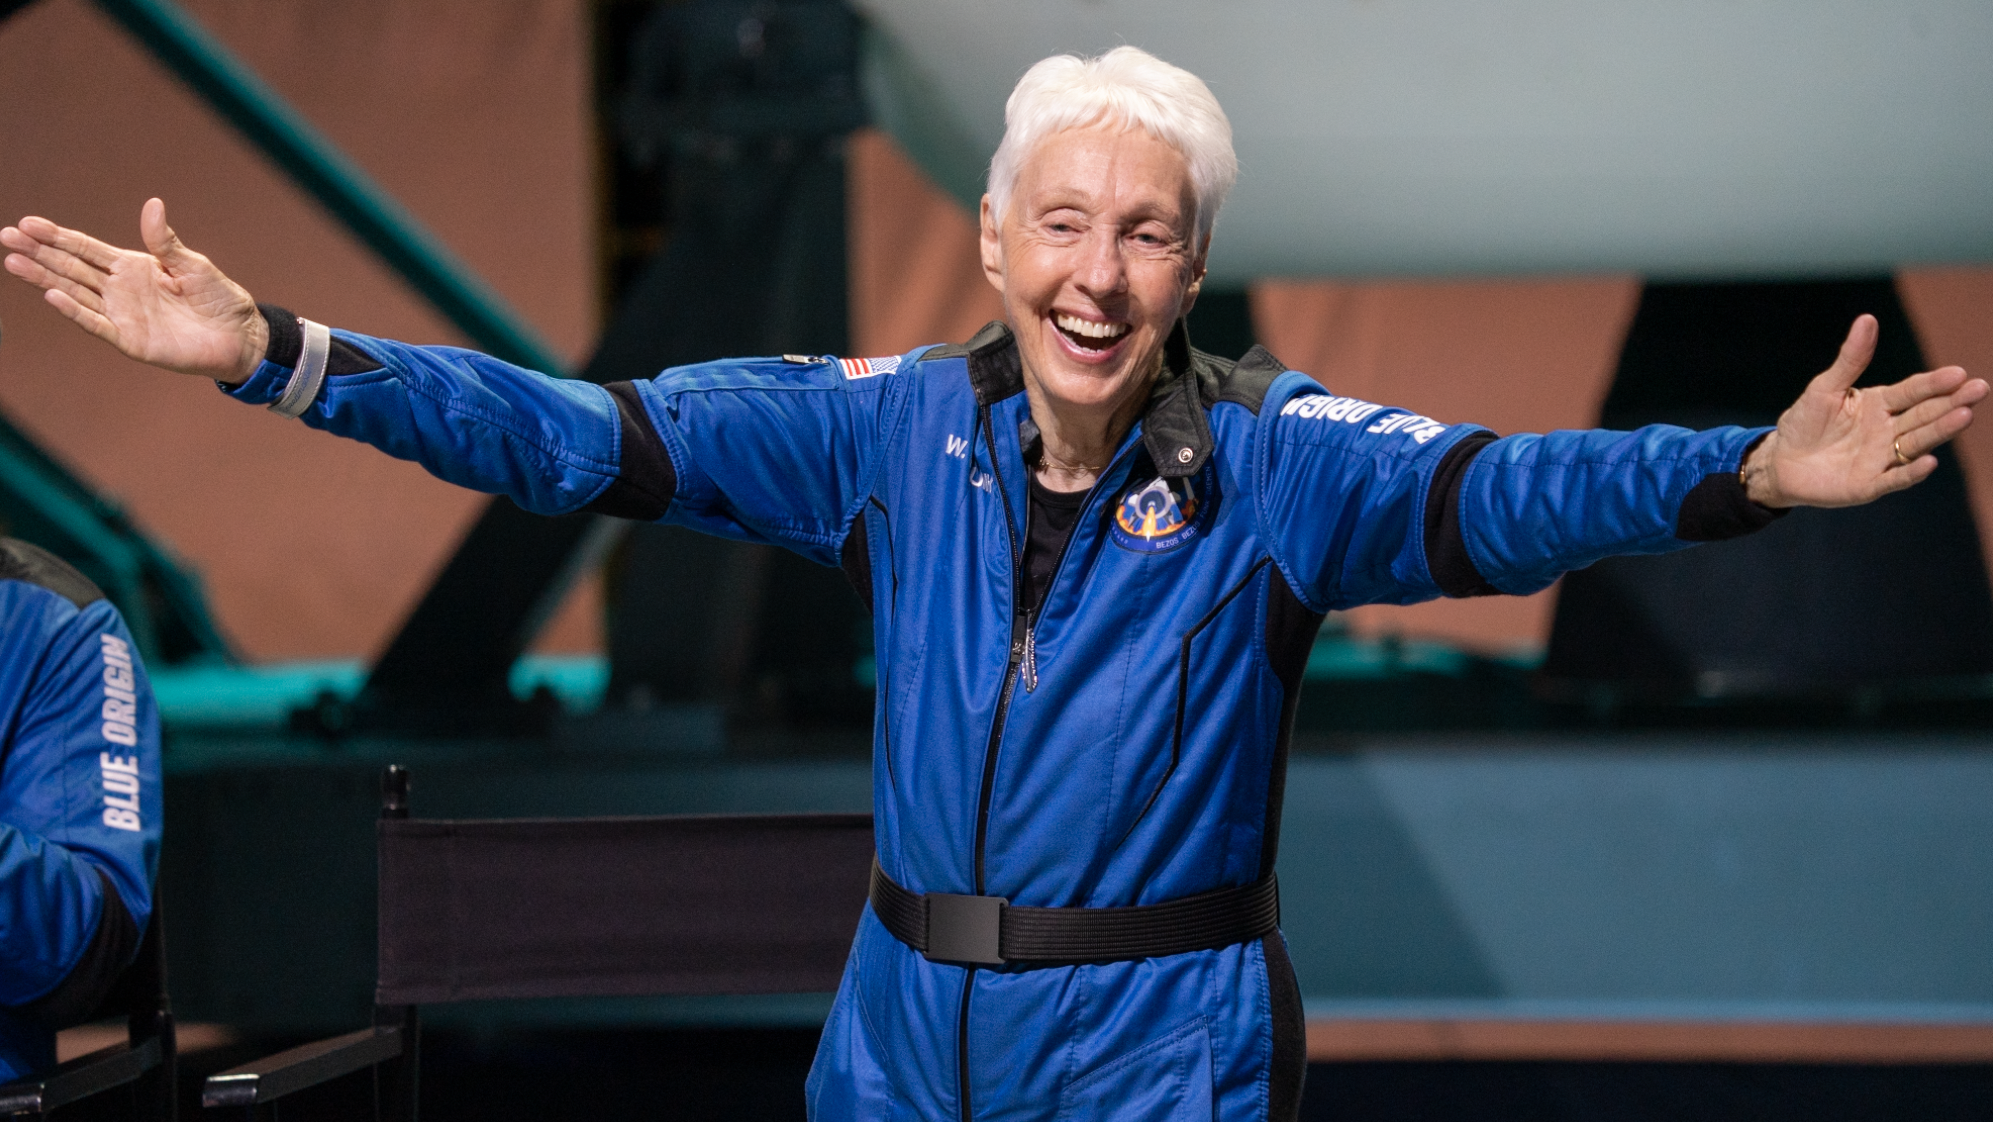 Wally Funk, 82, celebrates after her successful flight on New Shepard on Tuesday, July 20, 2021. She is officially the oldest person to have traveled to space.